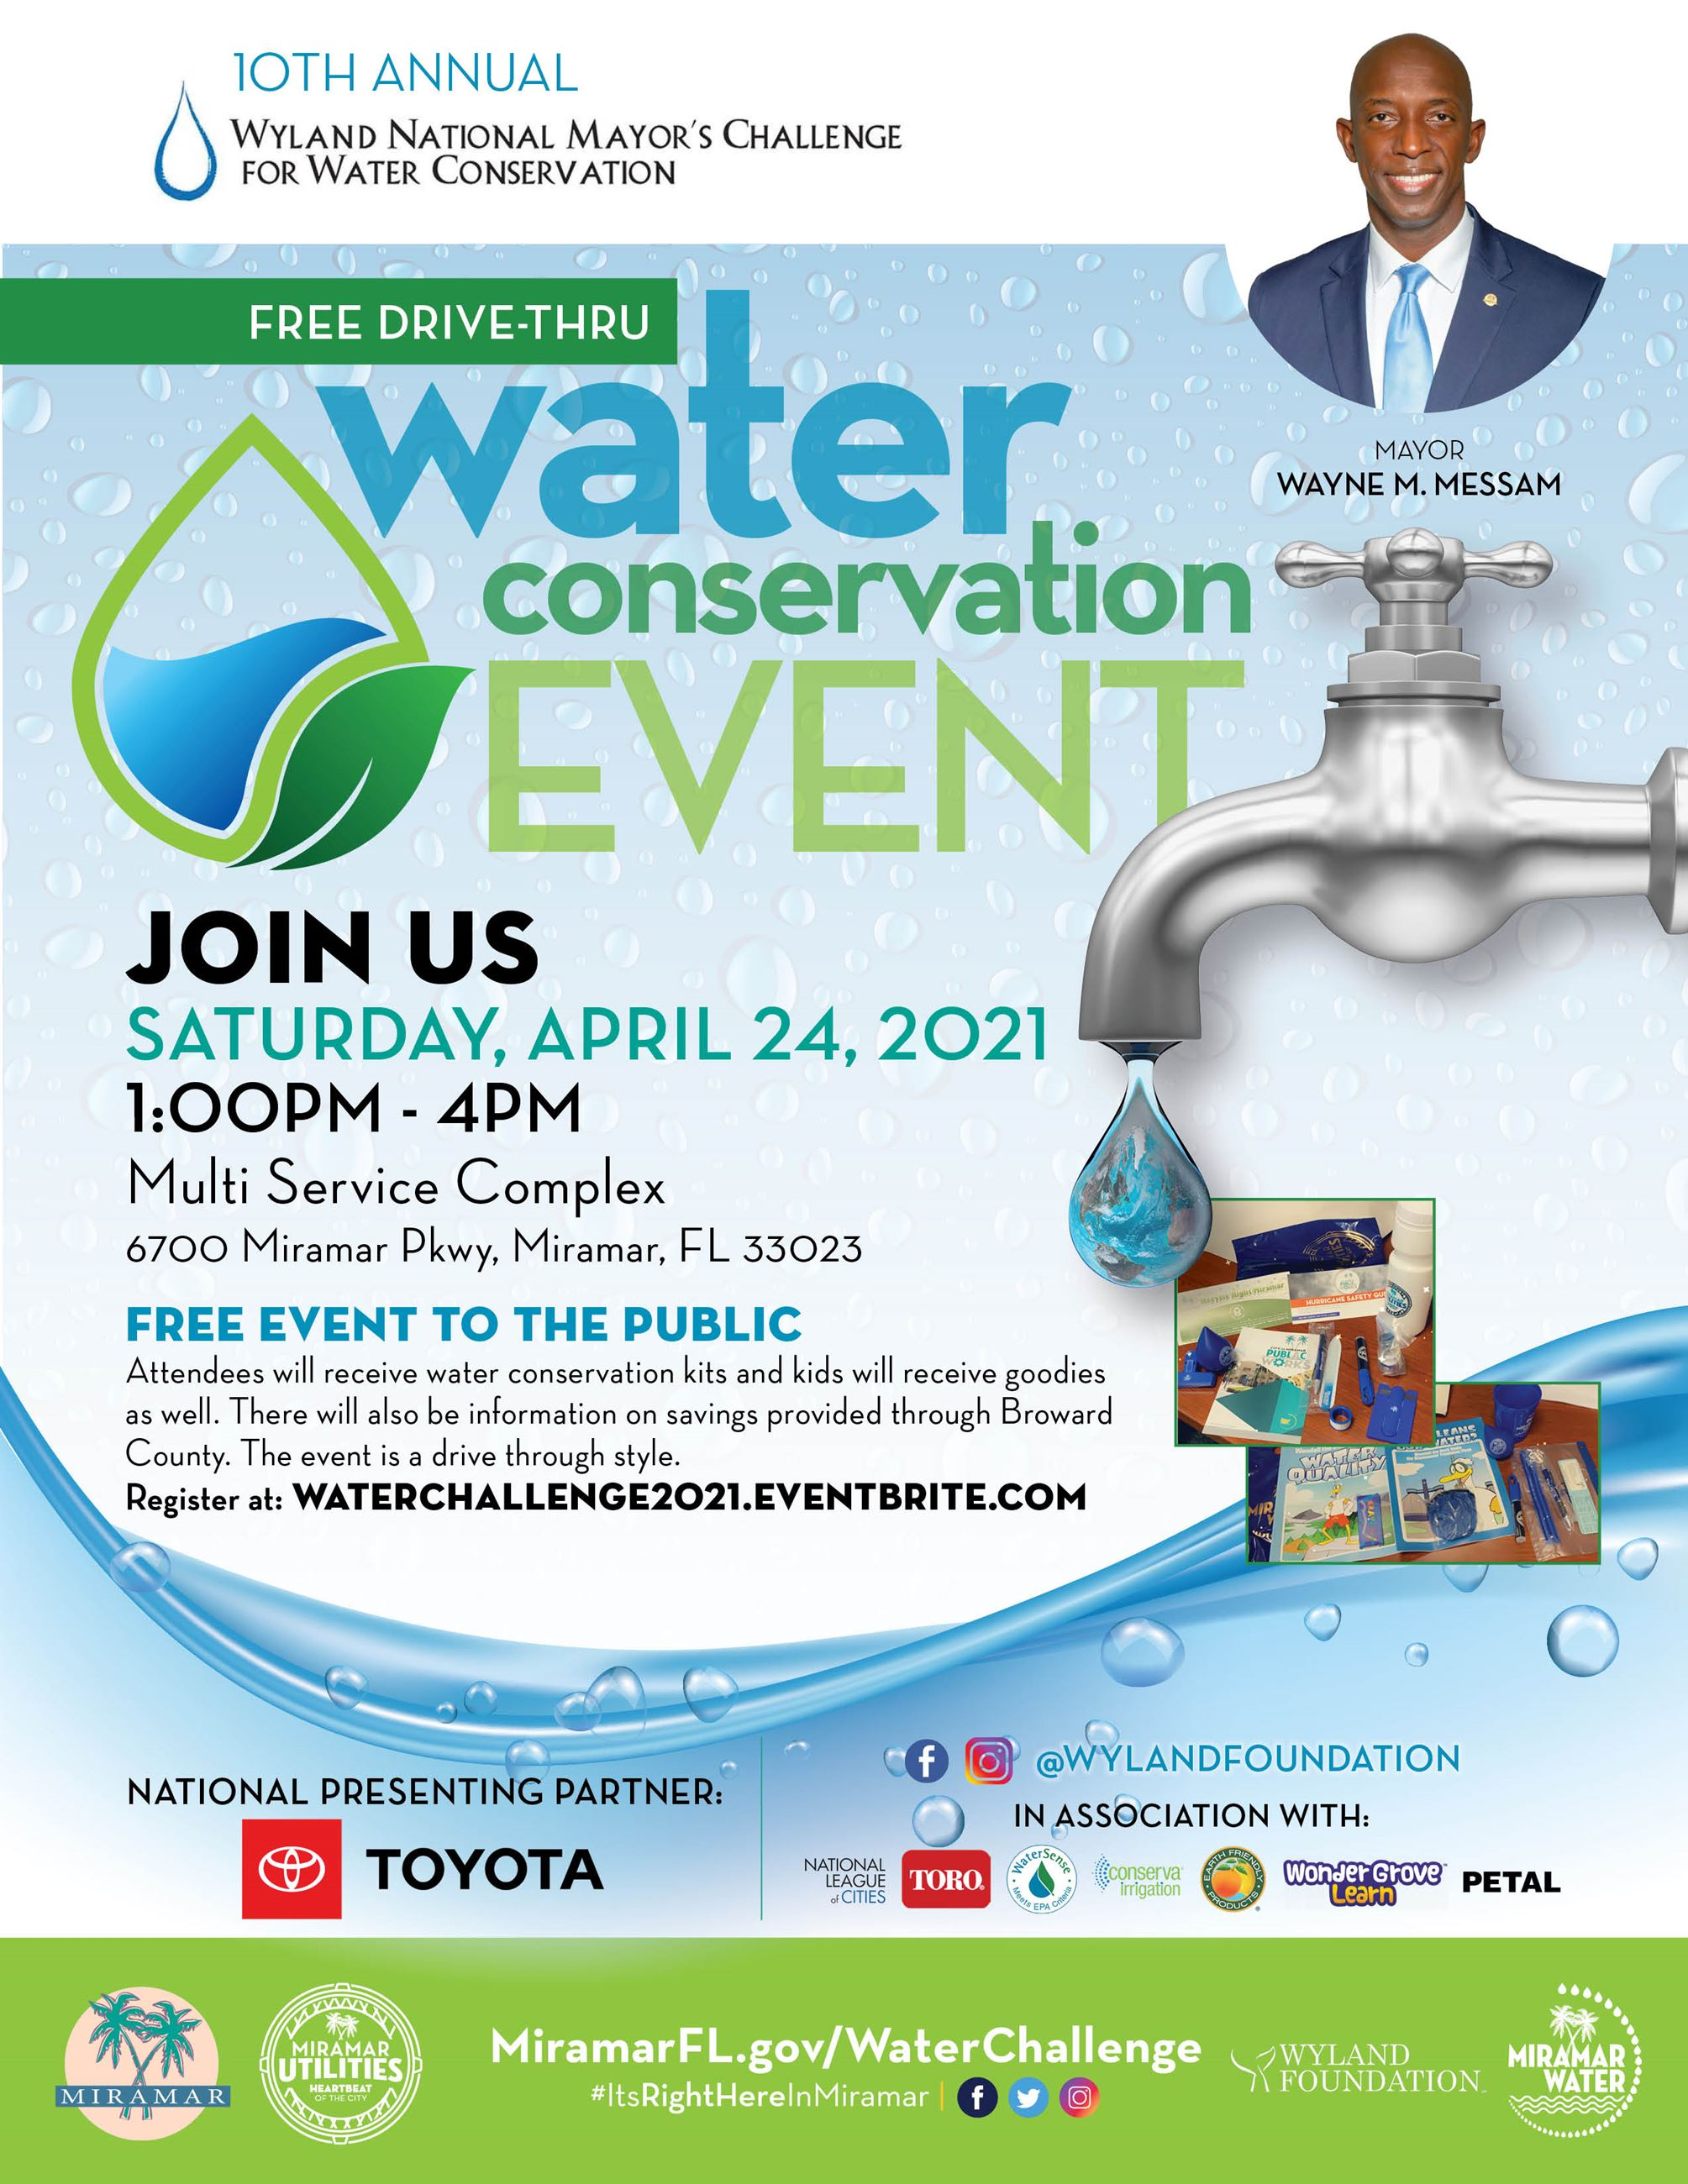 Mayor Messam Annual Water Challenge Drive-Thru Event April 24 2021